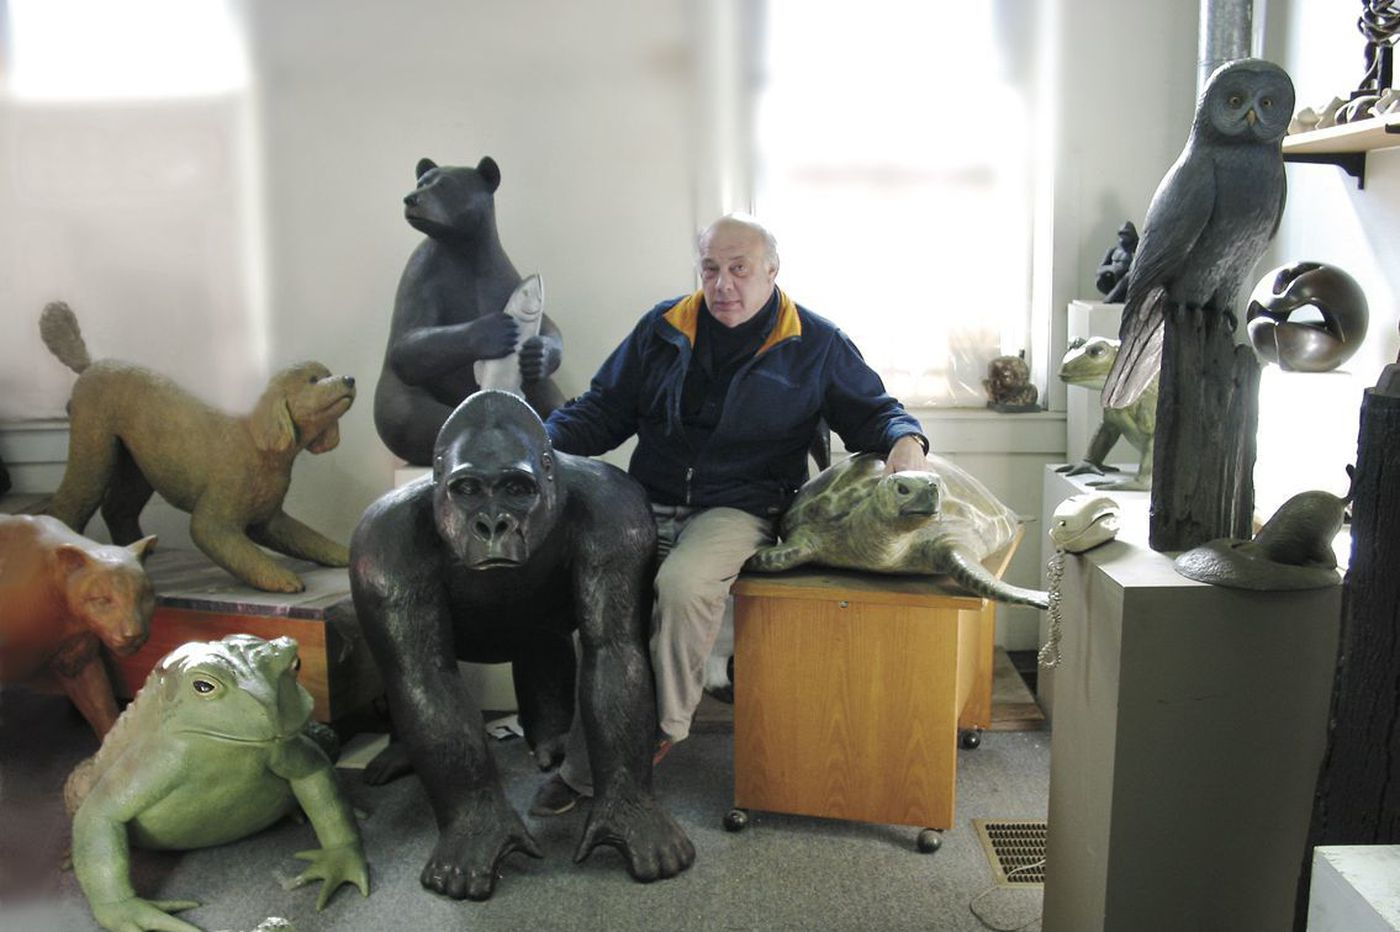 Eric Berg, sculptor whose creations include Reading Terminal's Philbert the pig, dies at 74